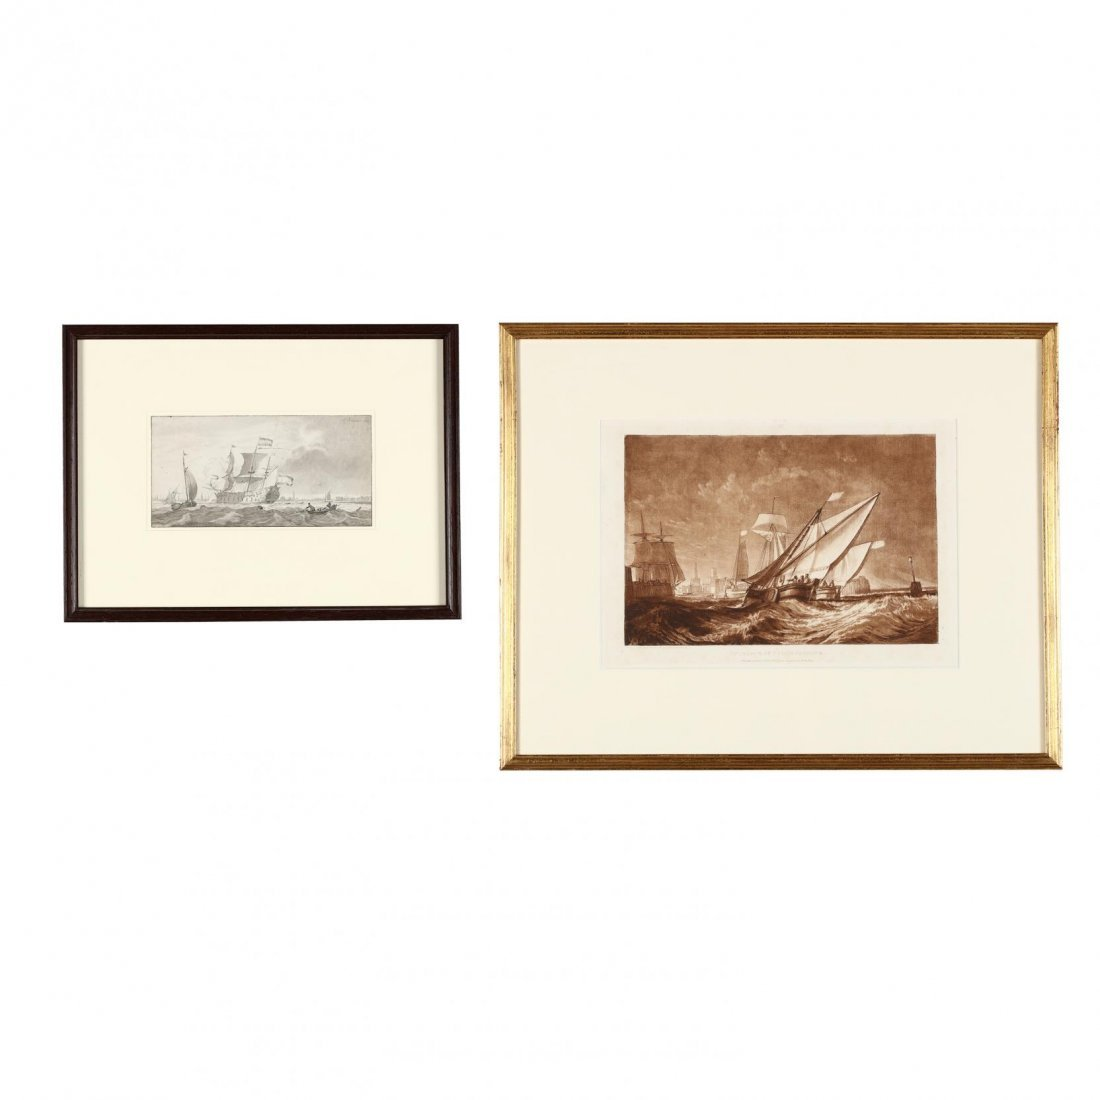 Two Antique Prints Picturing Sailing Vessels - Turner